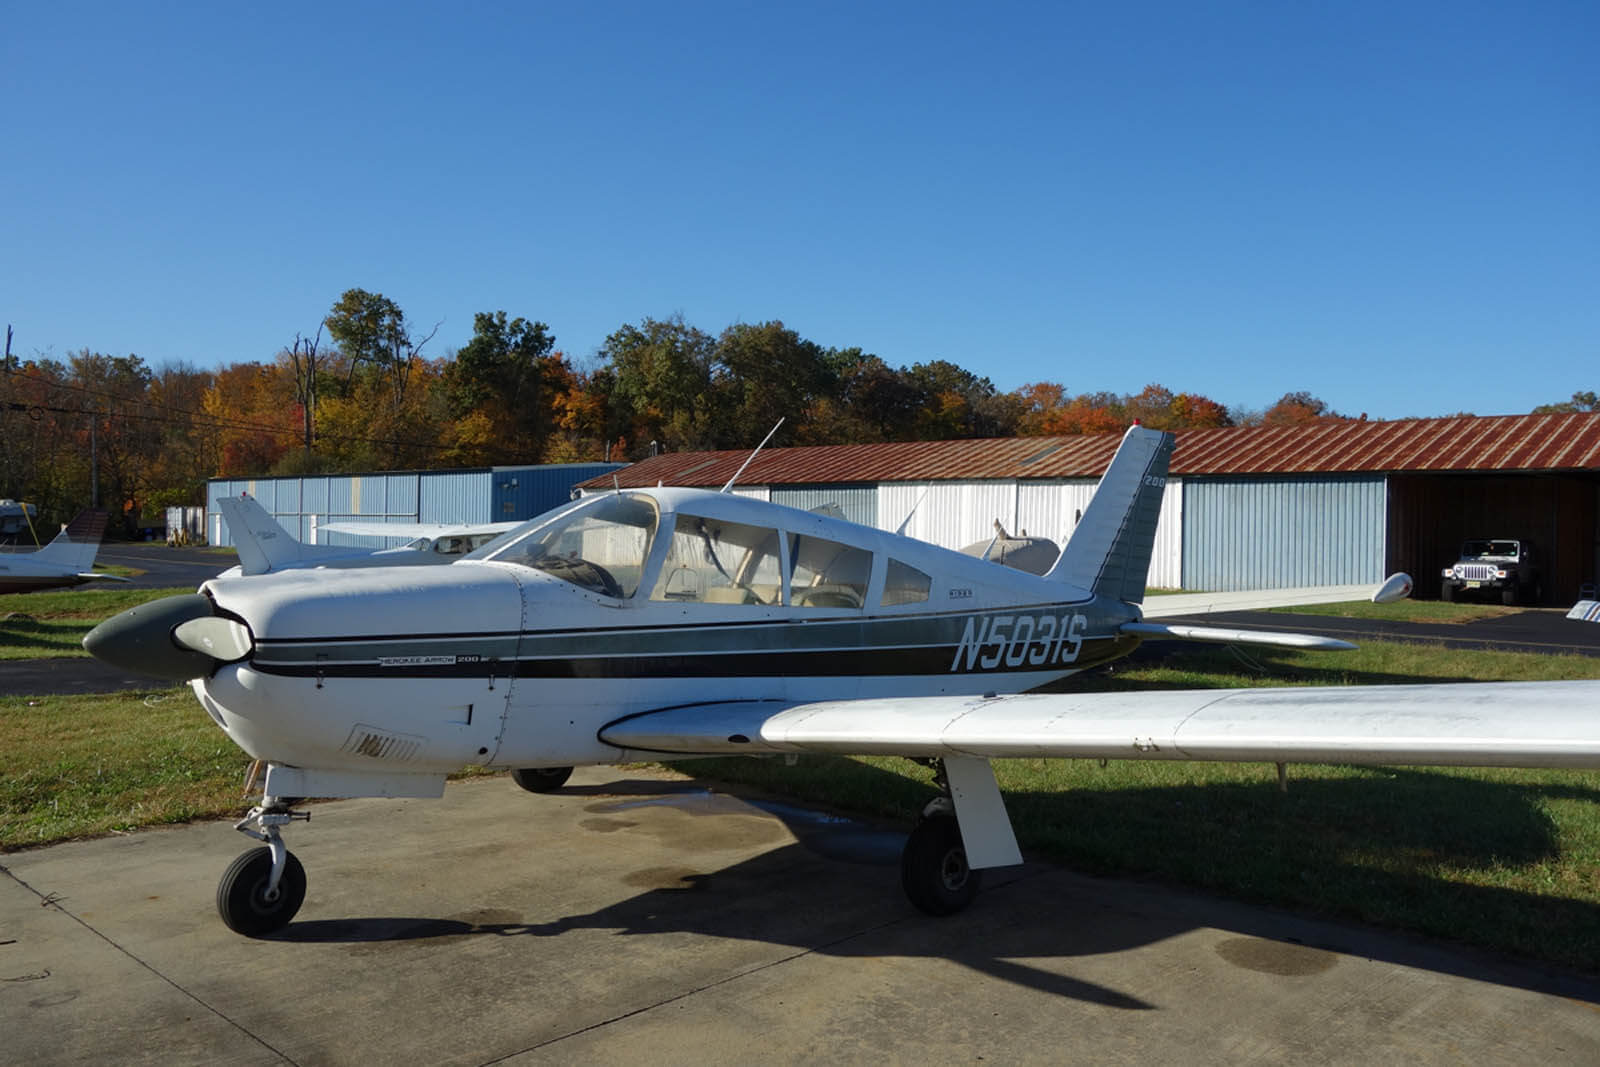 1970 Piper Arrow 200 - FOR SALE at Princeton Airport ~ Contact Ken Nierenberg at 609-731-4628 for details